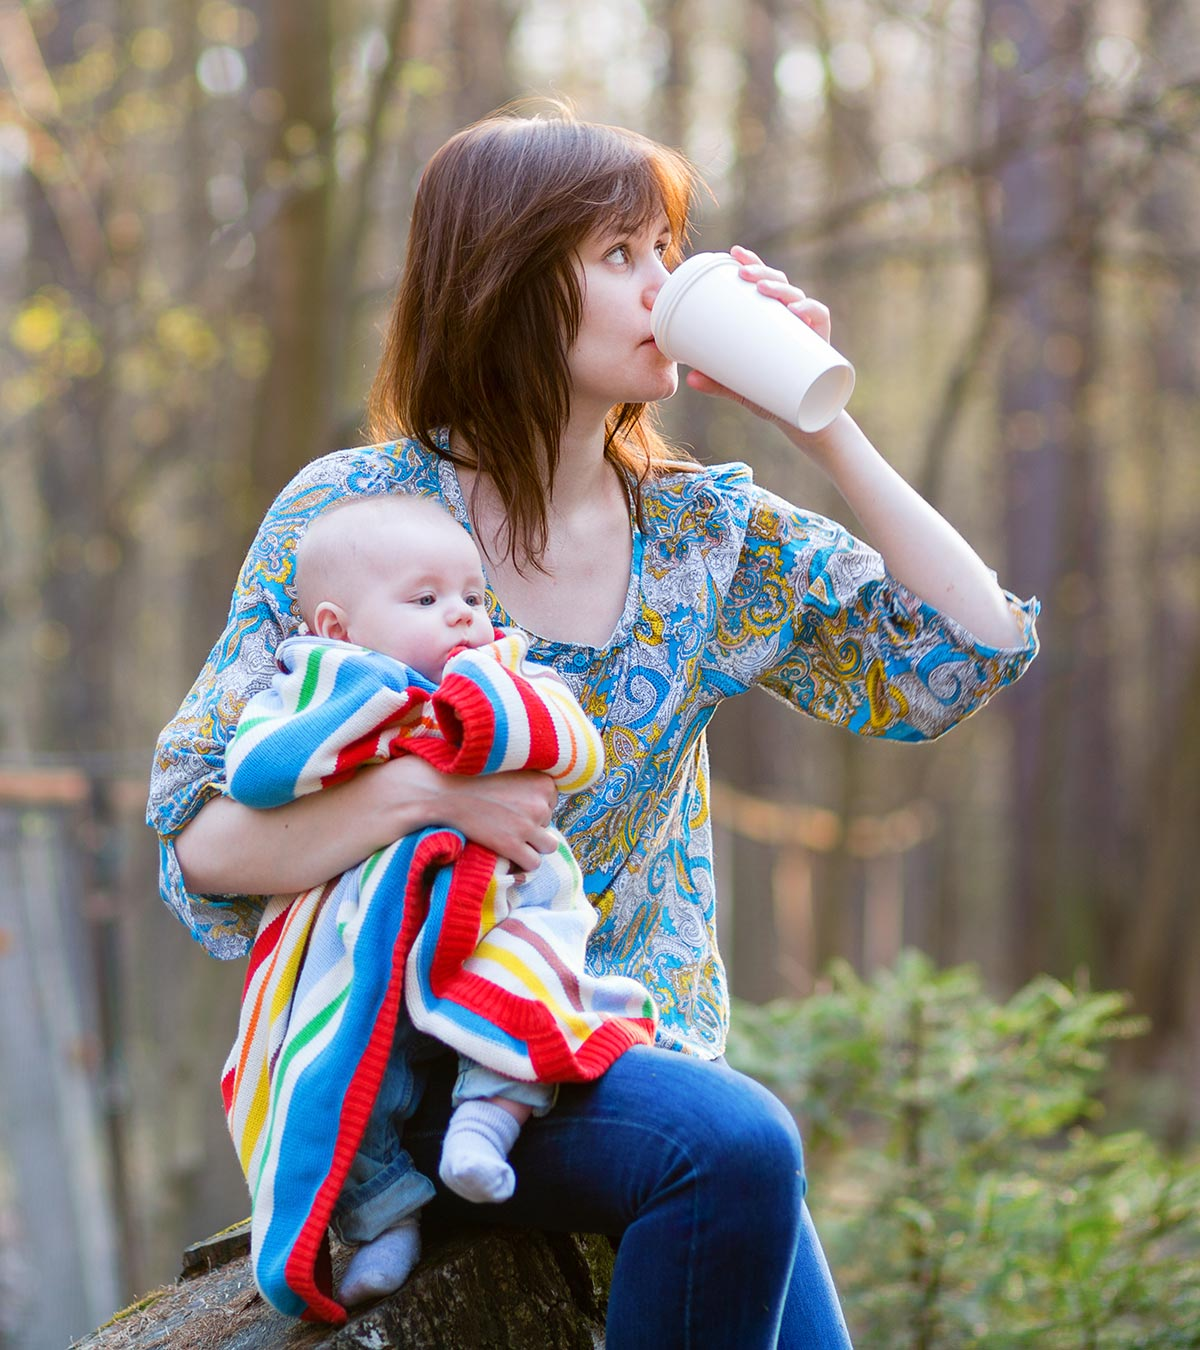 Is CBD and Weed Safe in Pregnancy or Breastfeeding